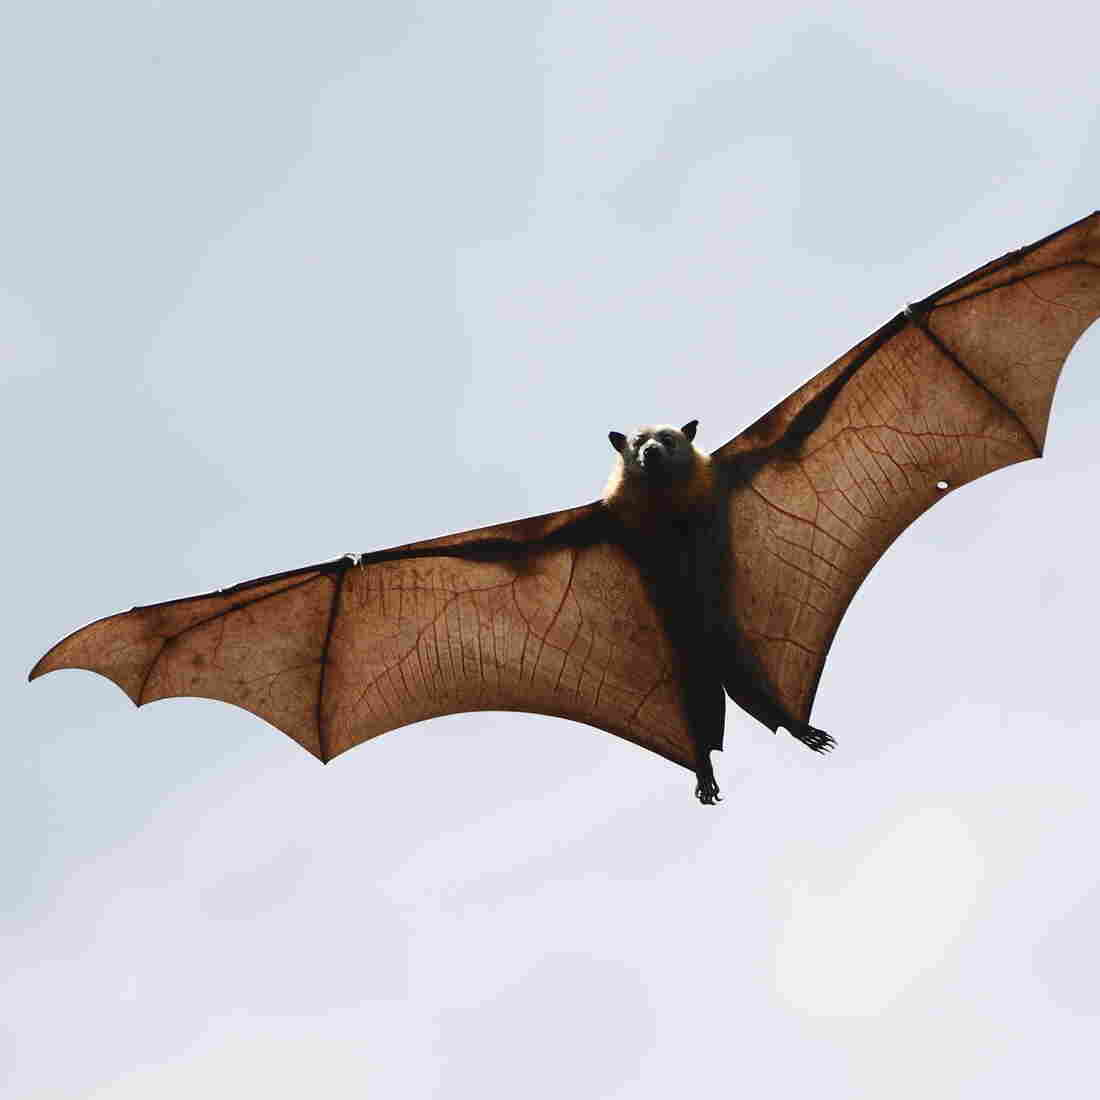 Genome Hints At Bat Link For SARS-Like Virus